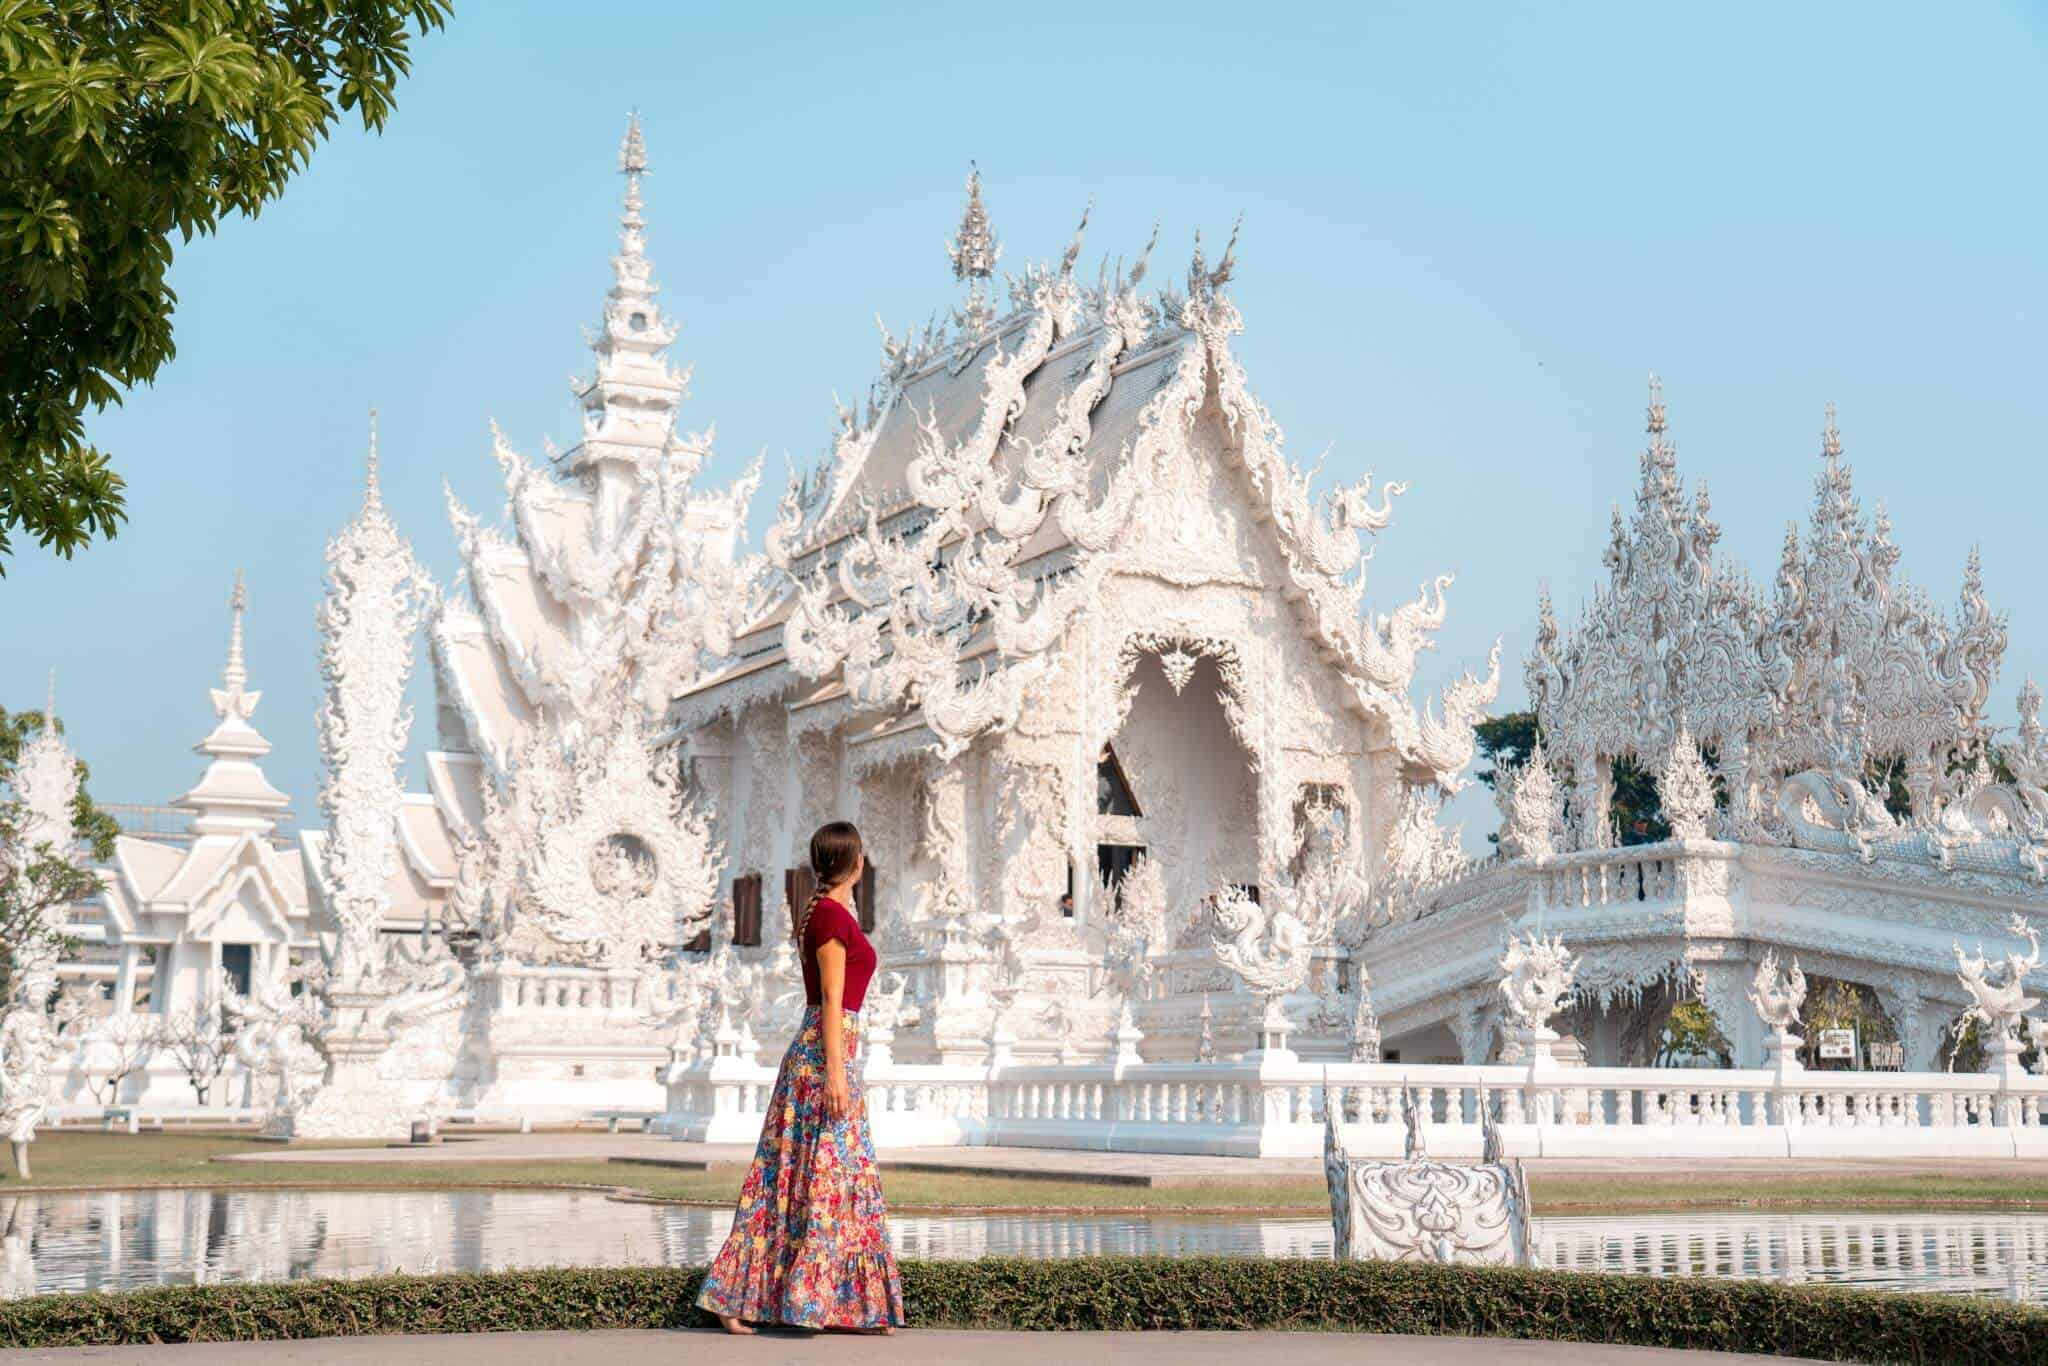 An angular view of the magnificent White Temple of Chiang Rai, as seen by Travels of Sophie.